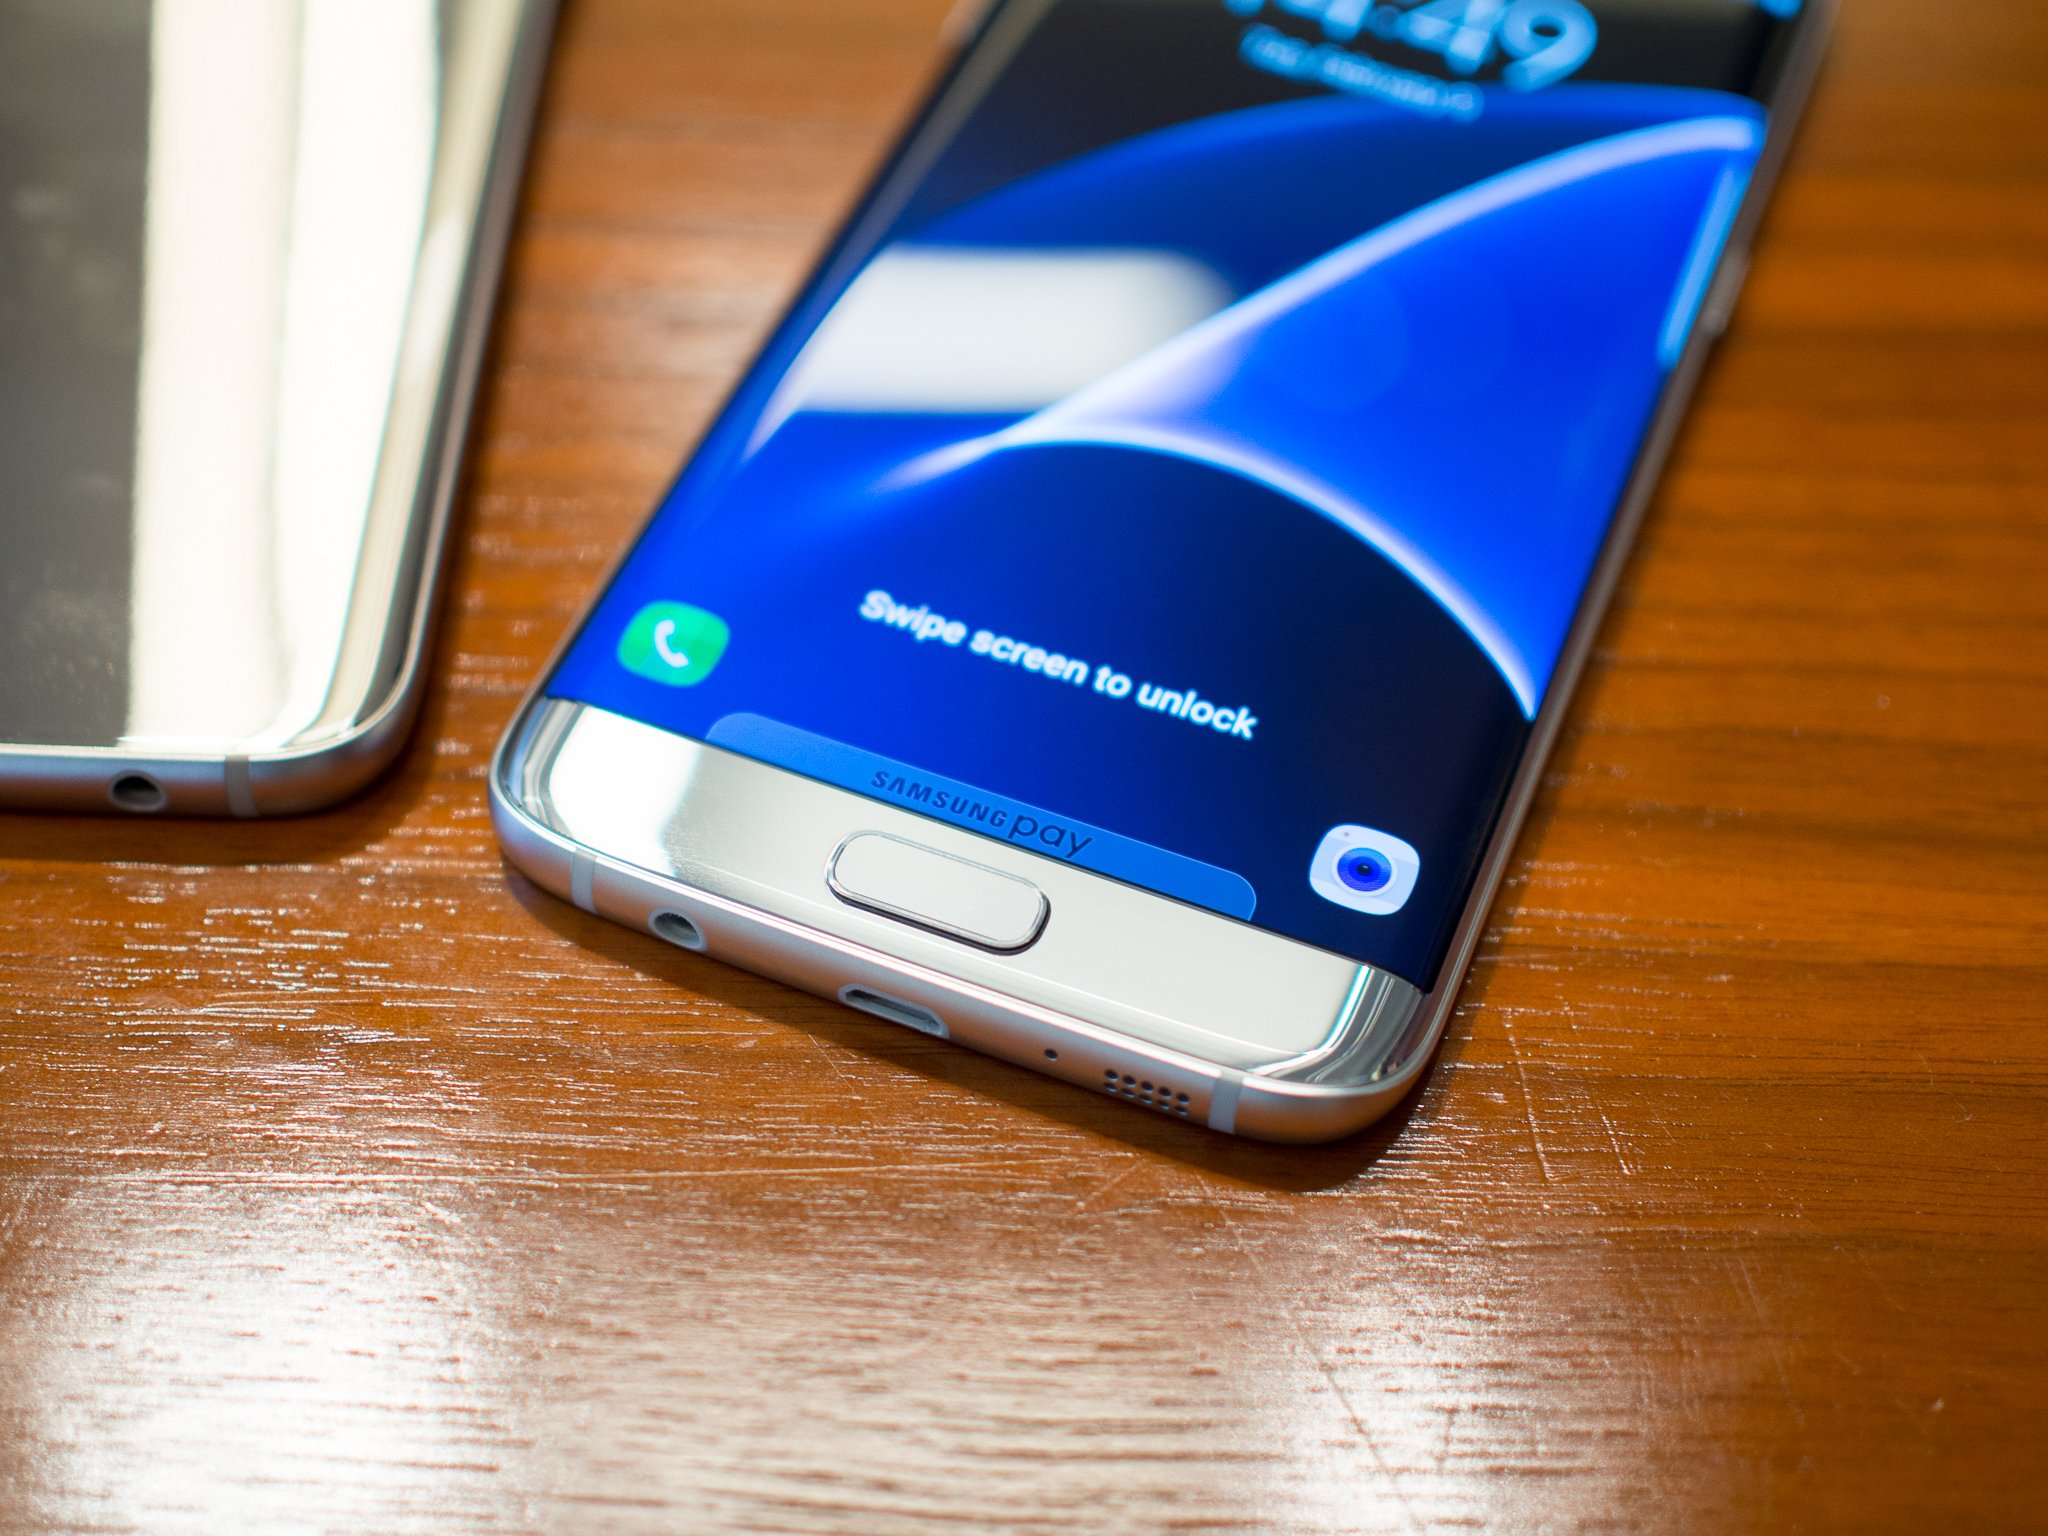 Galaxy S7 And S7 Edge Launch Everything You Need To Know - Galaxy S7 Edge